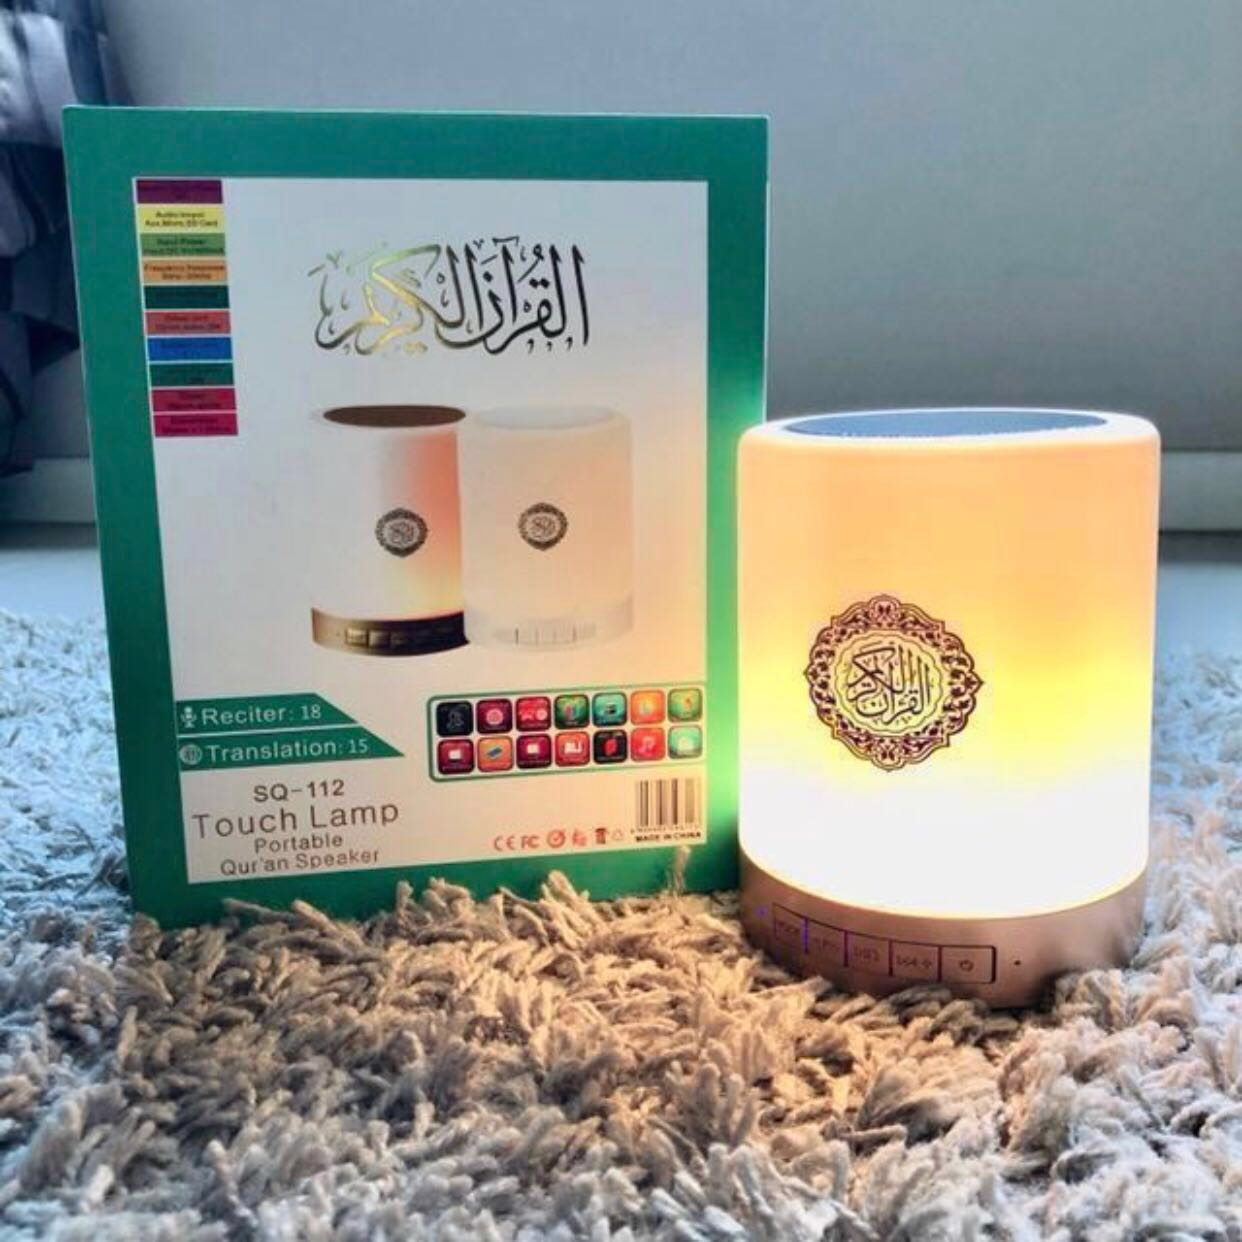 Instock Quran Bluetooth Speaker Touch Lamp Vintage Xtreme Perfect Choice Portable Original Hijau Collectibles Religious Items On Carousell